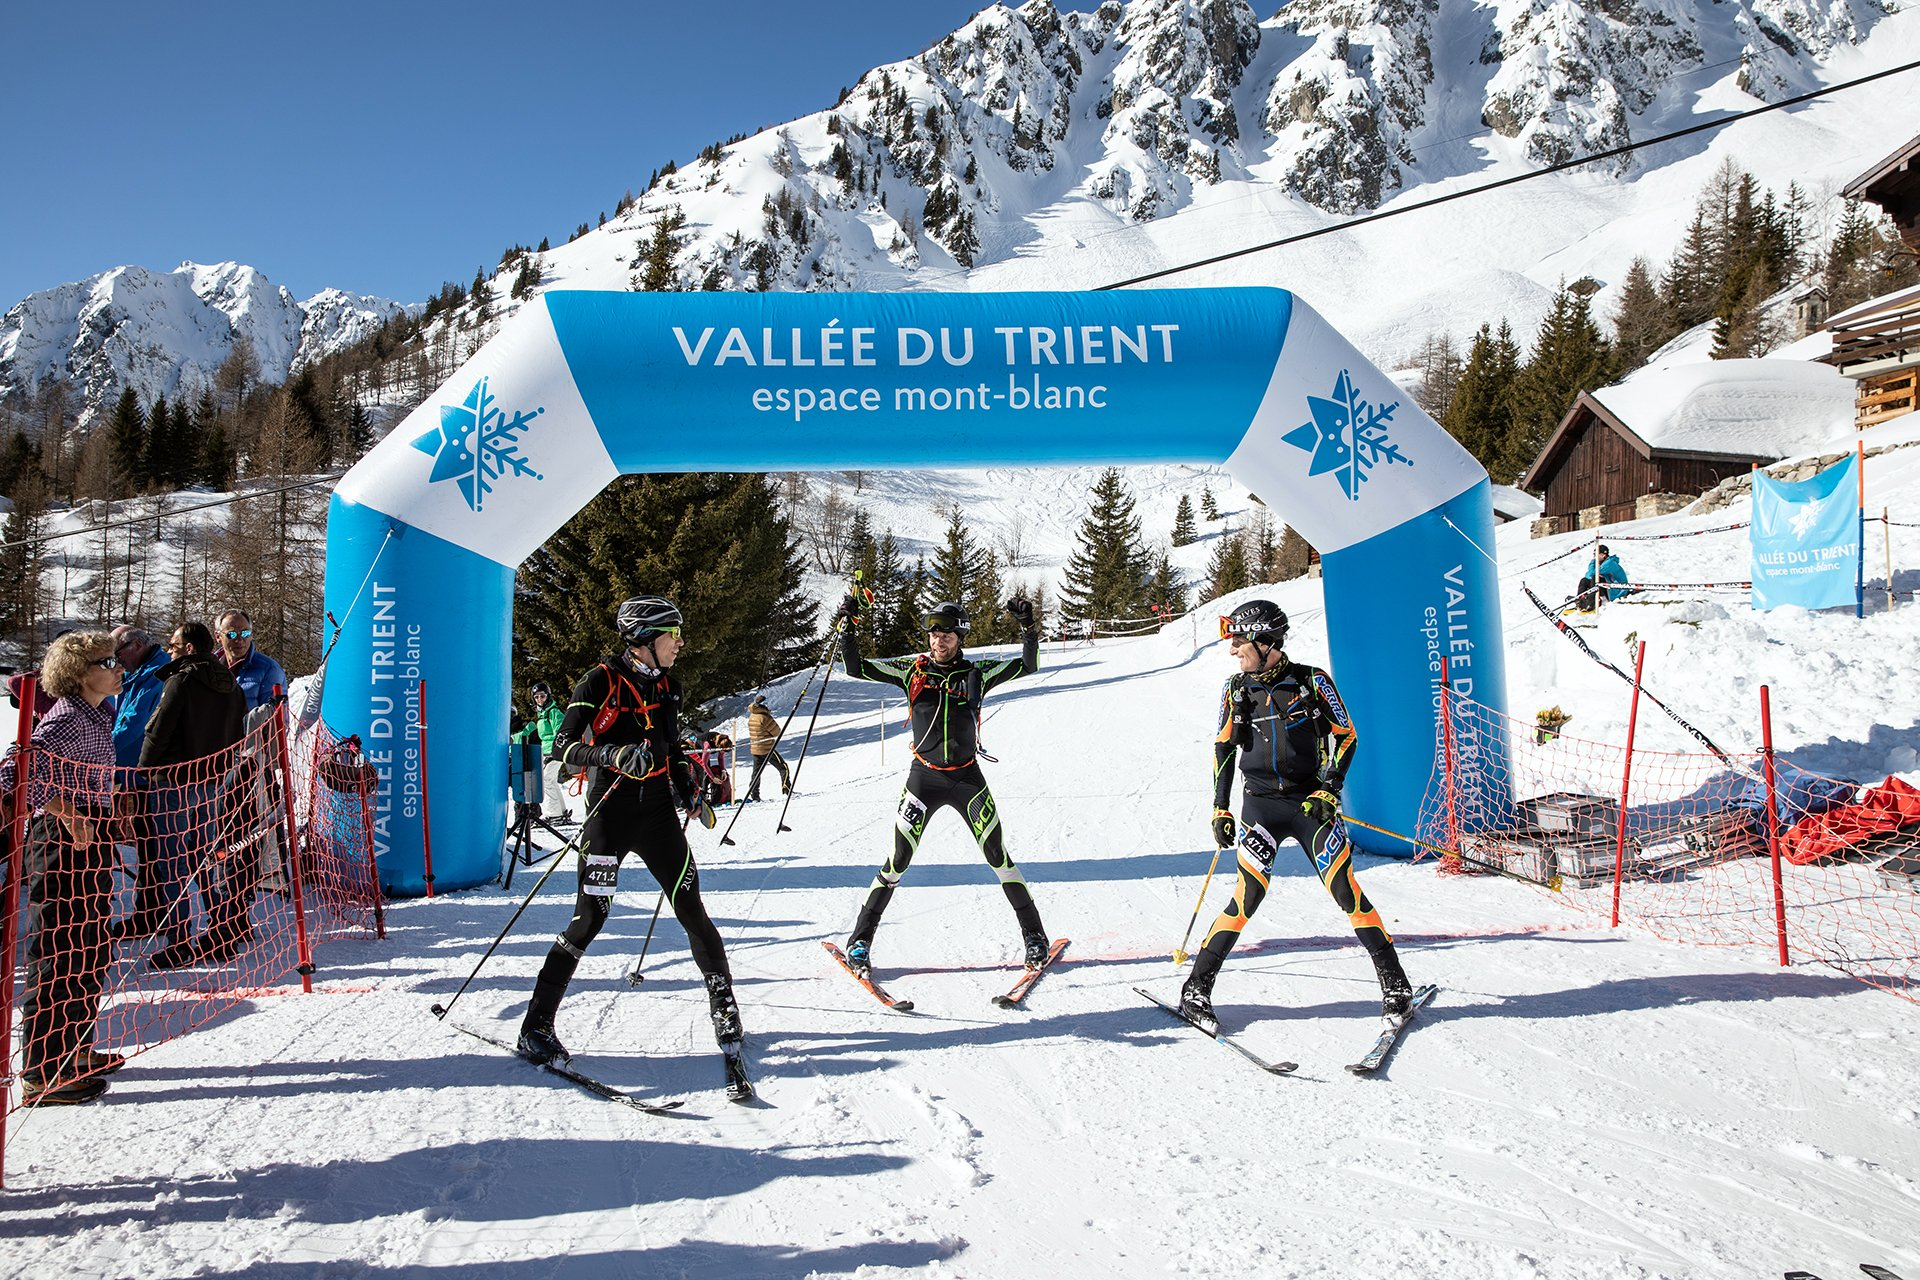 /UserFiles/File/Annuaire/annuaire_selections/vall/vallee-du-trient-evenement-hiver.jpg